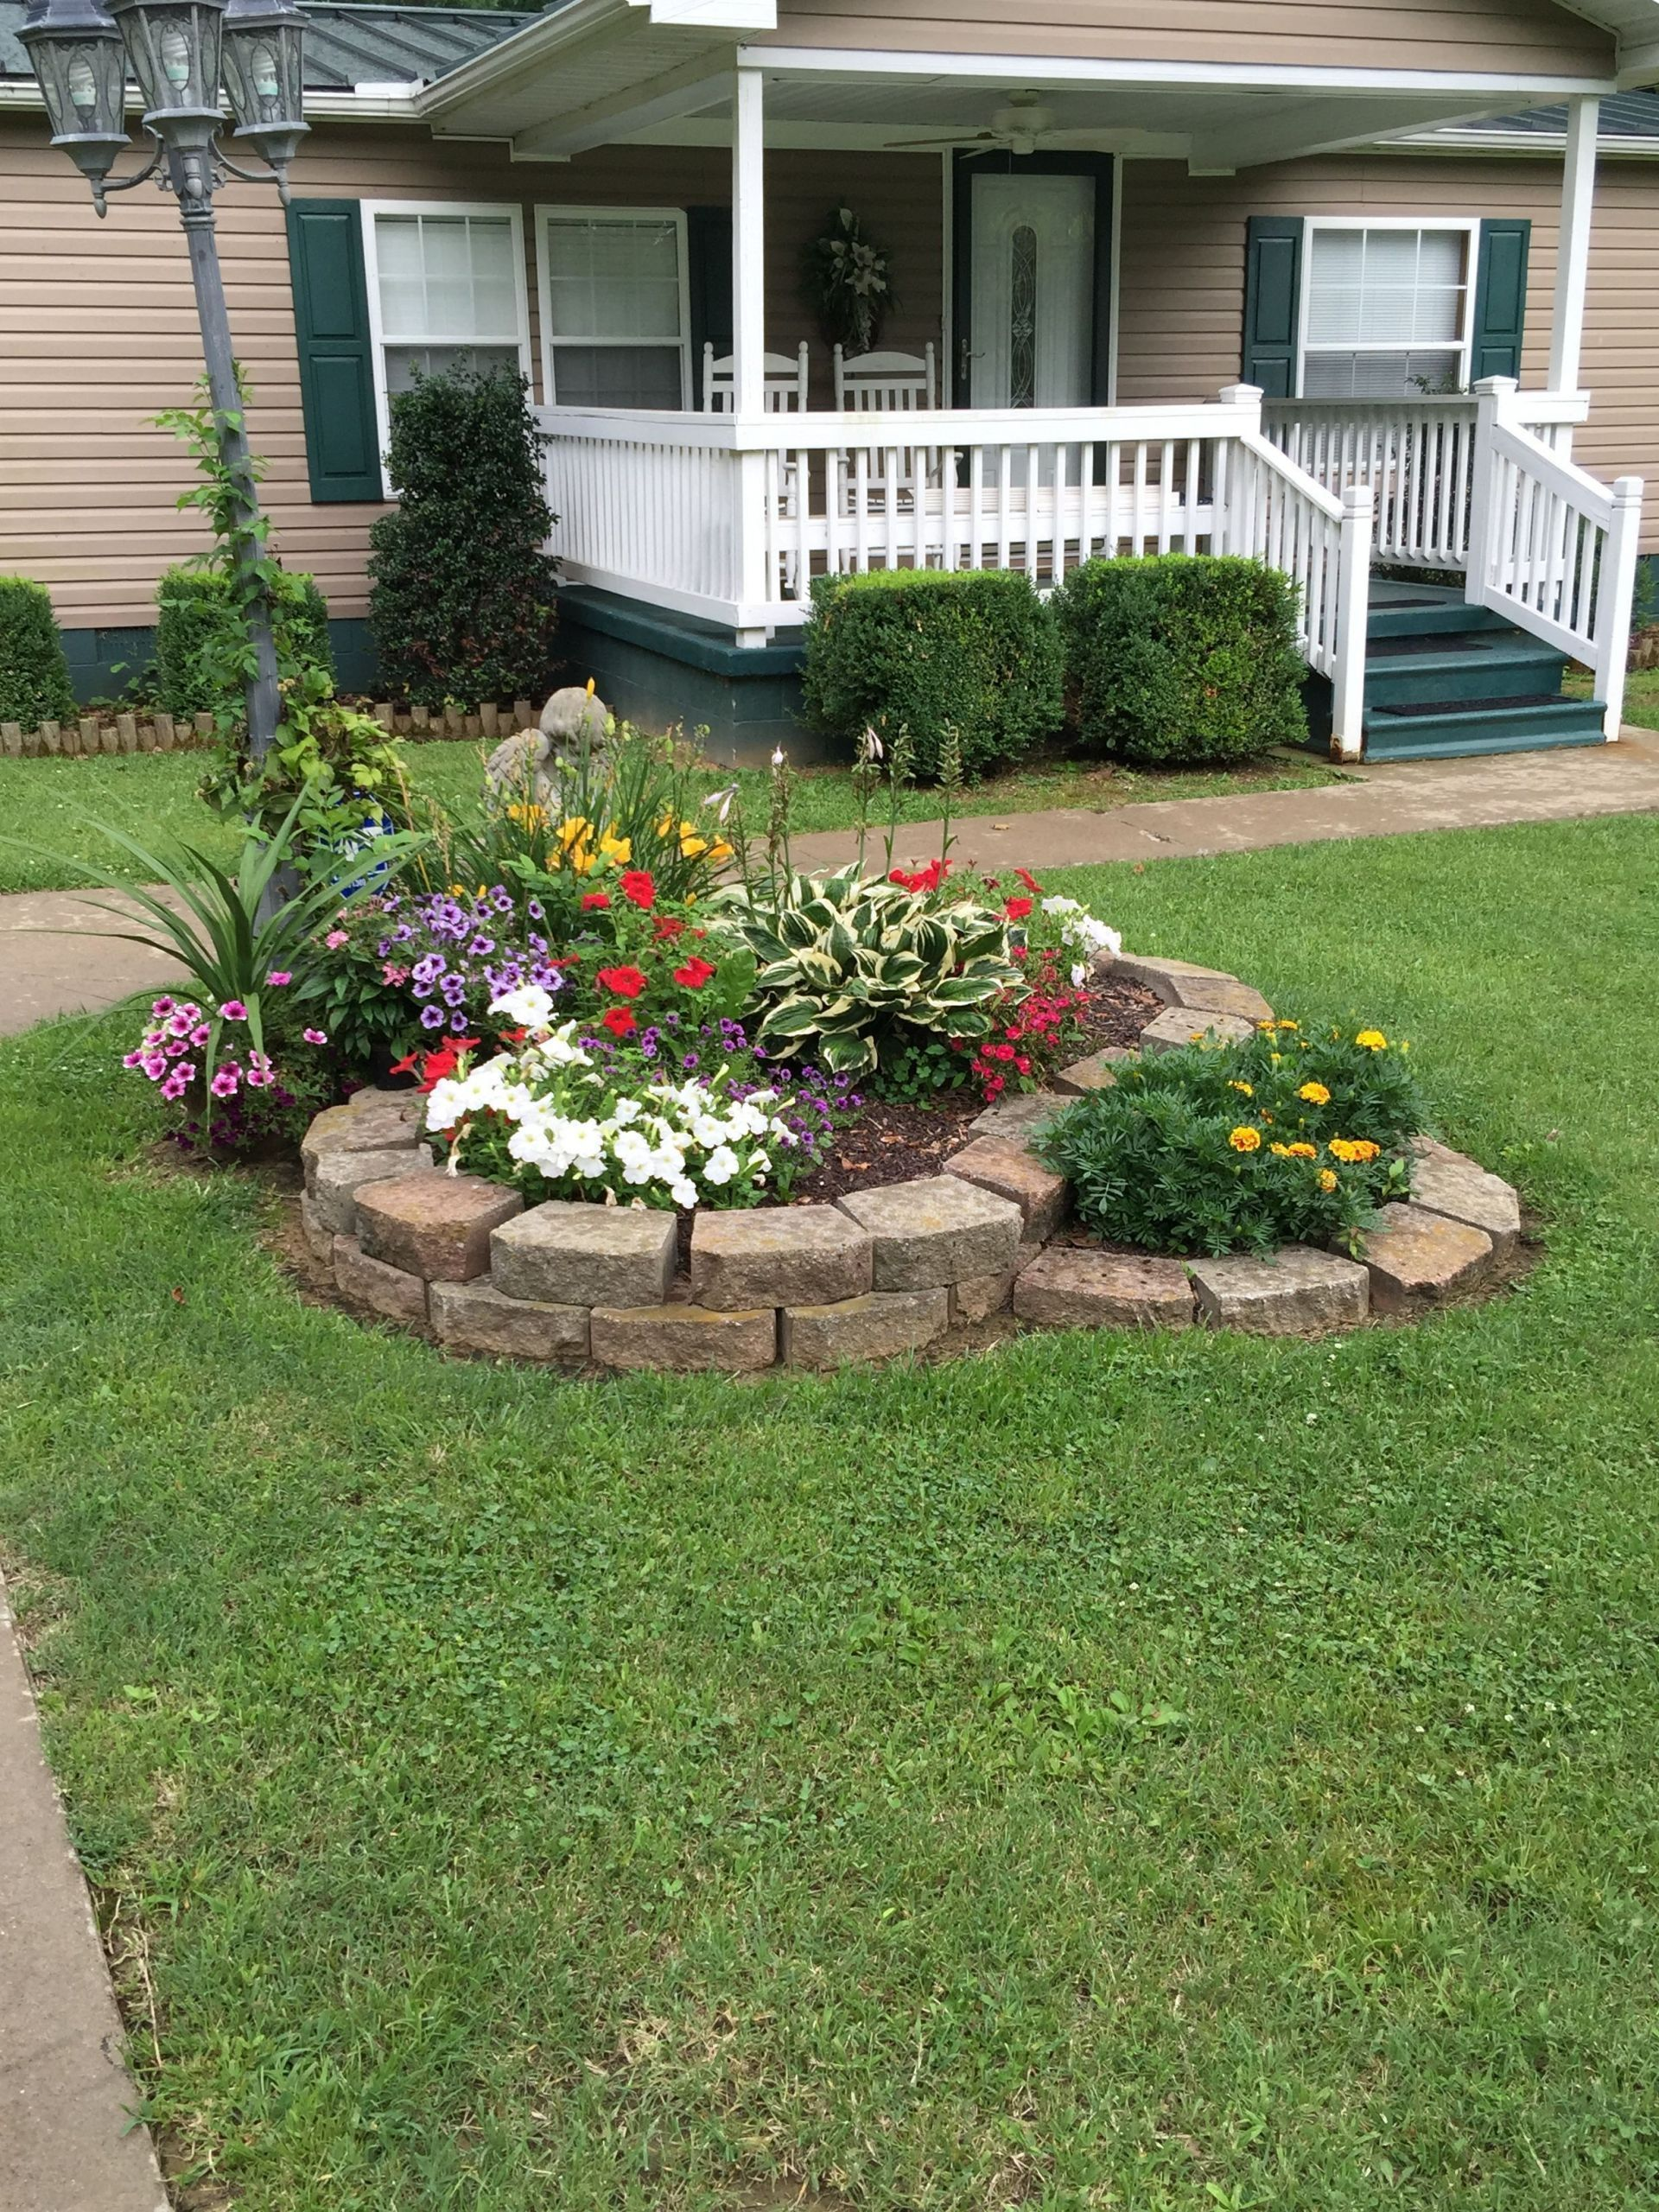 Impressive Small Front Yard Landscaping Ideas in 2020 ... on Cheap No Grass Backyard Ideas  id=77060